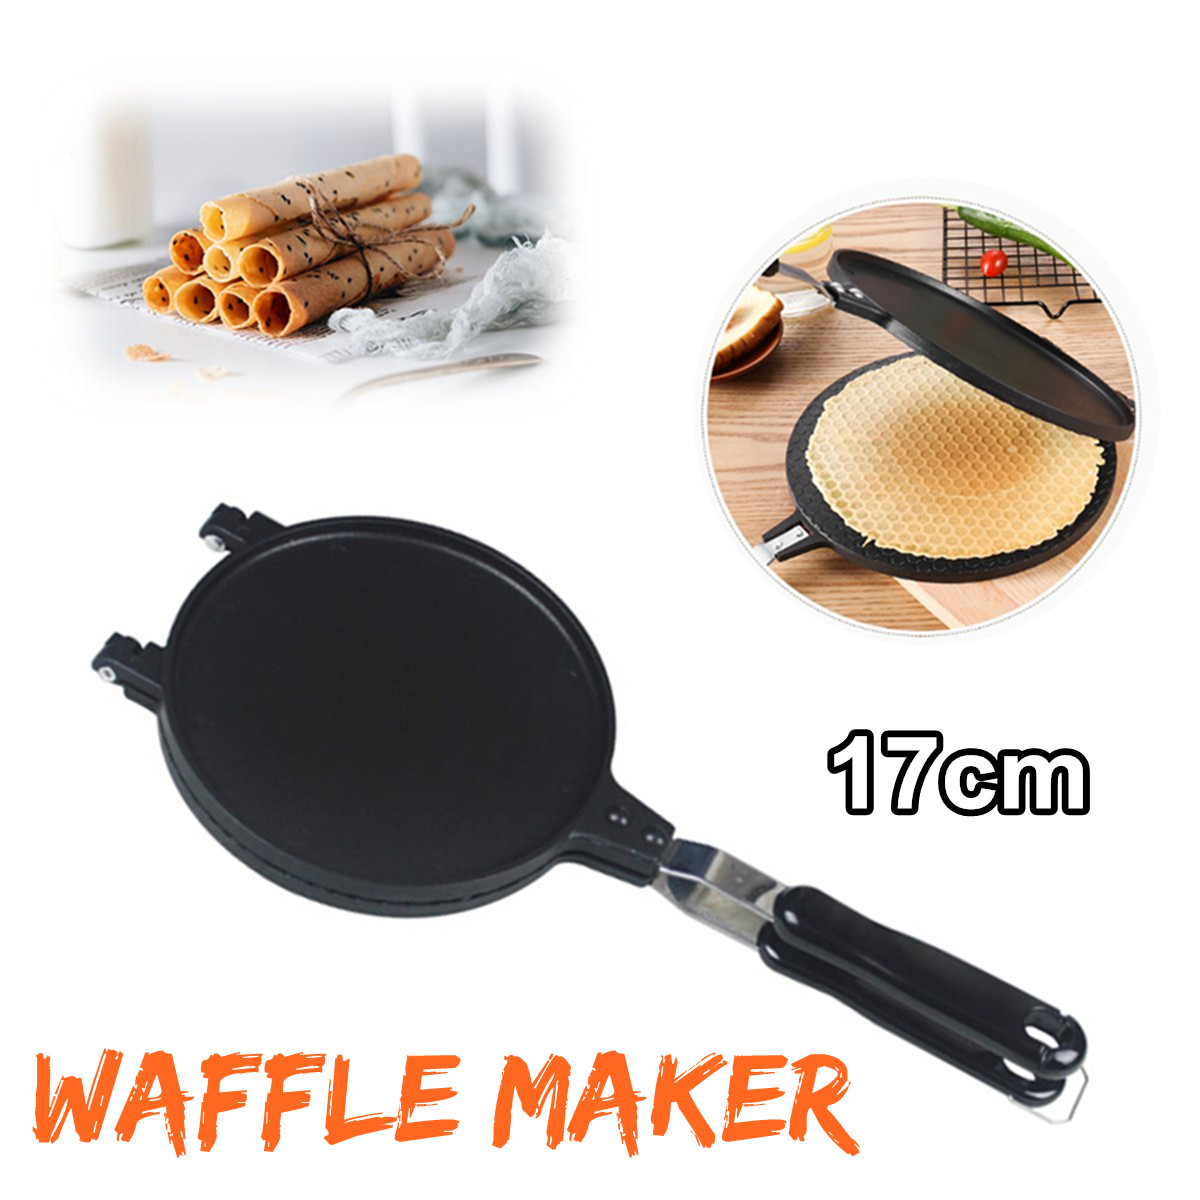 Waffle Bake Maker Kitchen Non-Stick Aluminum Alloy Waffle Maker Pan Mould Mold Press Plate Household Waffle Iron Baking Tools